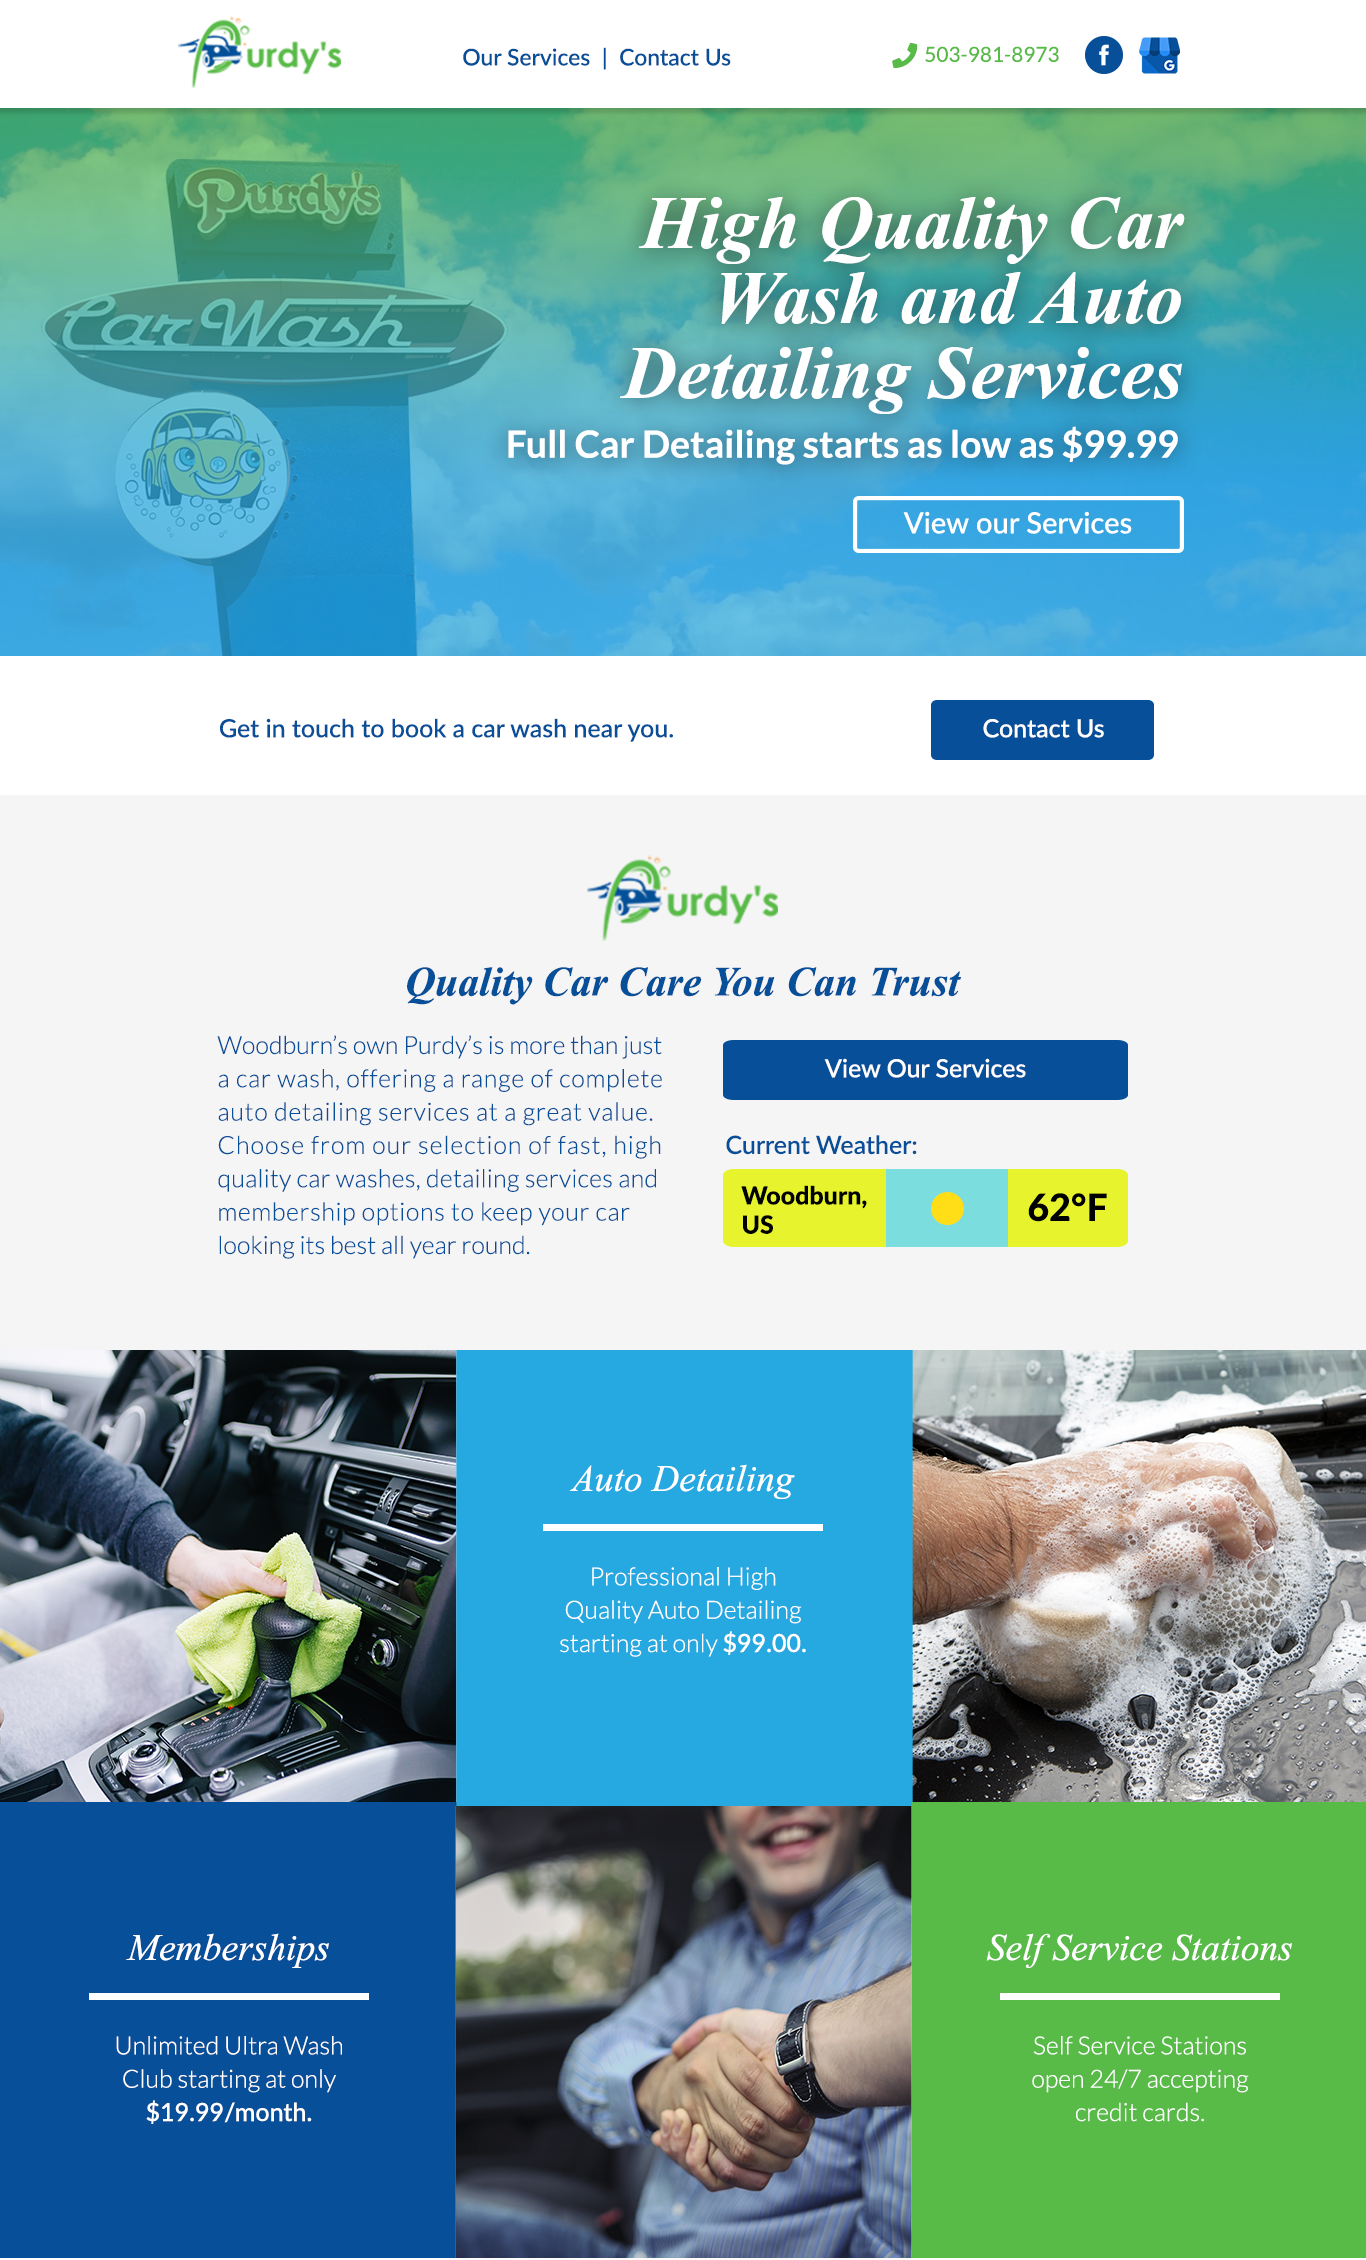 purdy's website home page